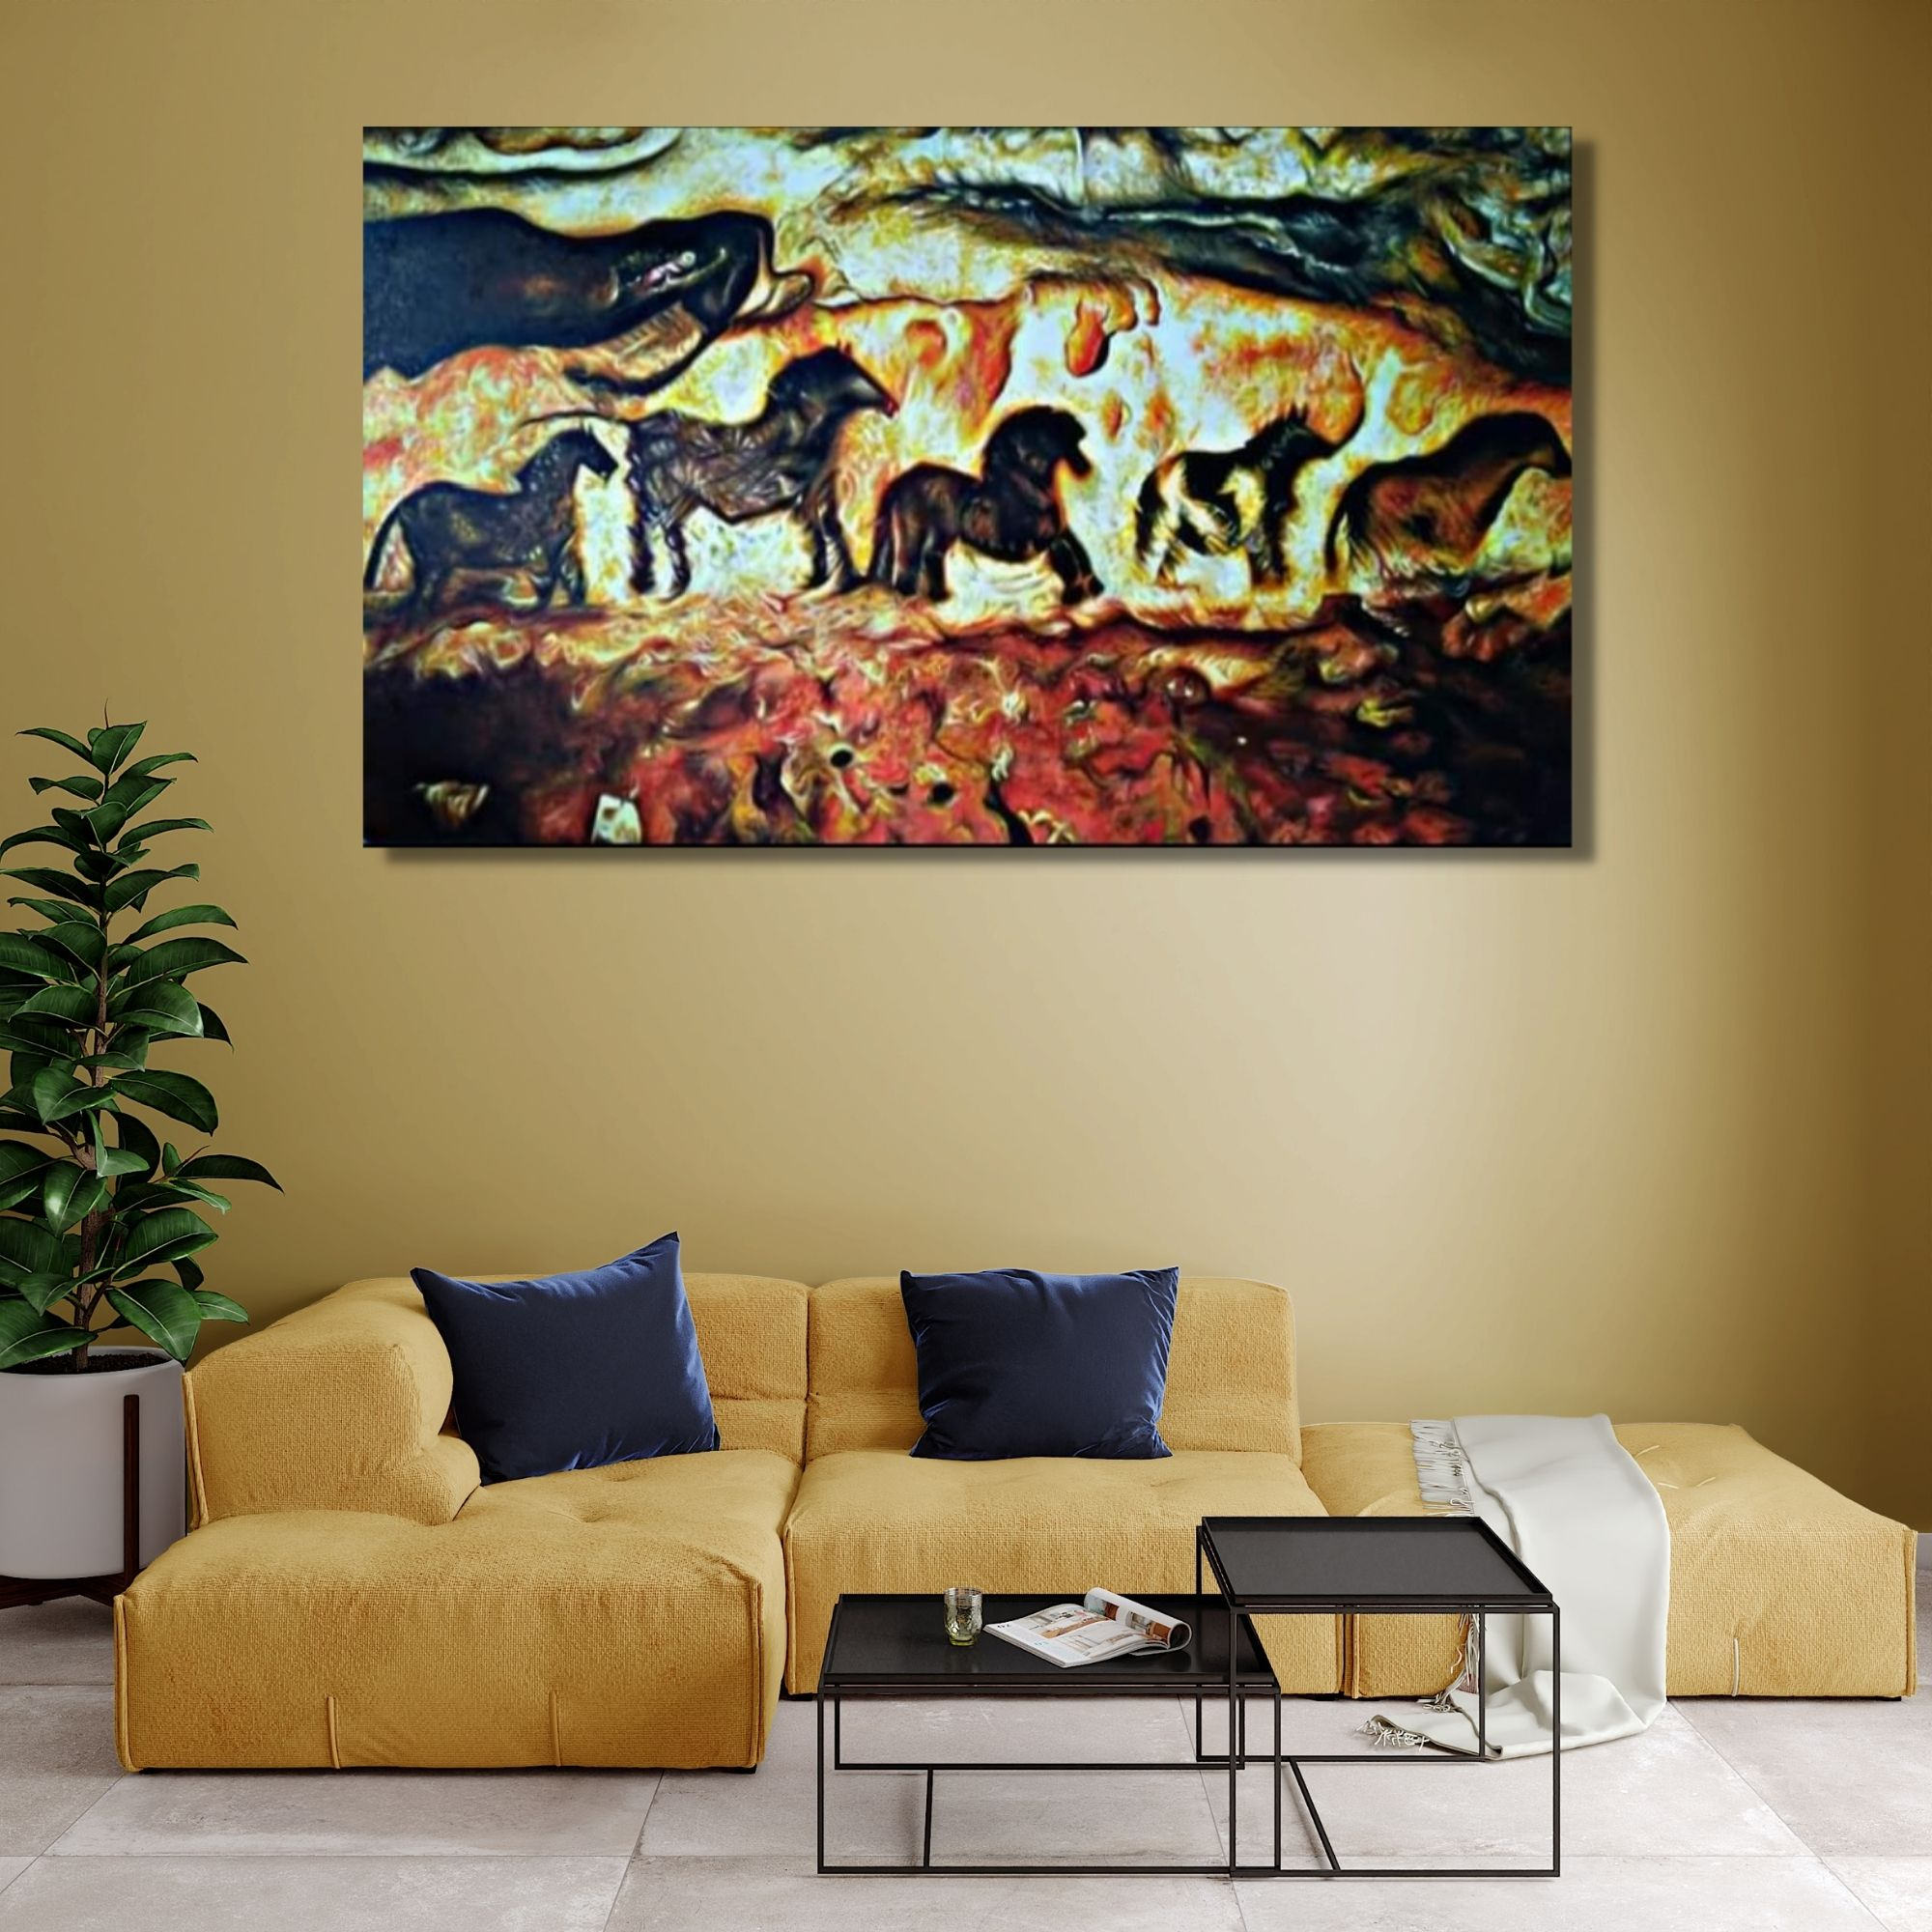 Ancient Cave-Oil on Canvas-36X60 Inch